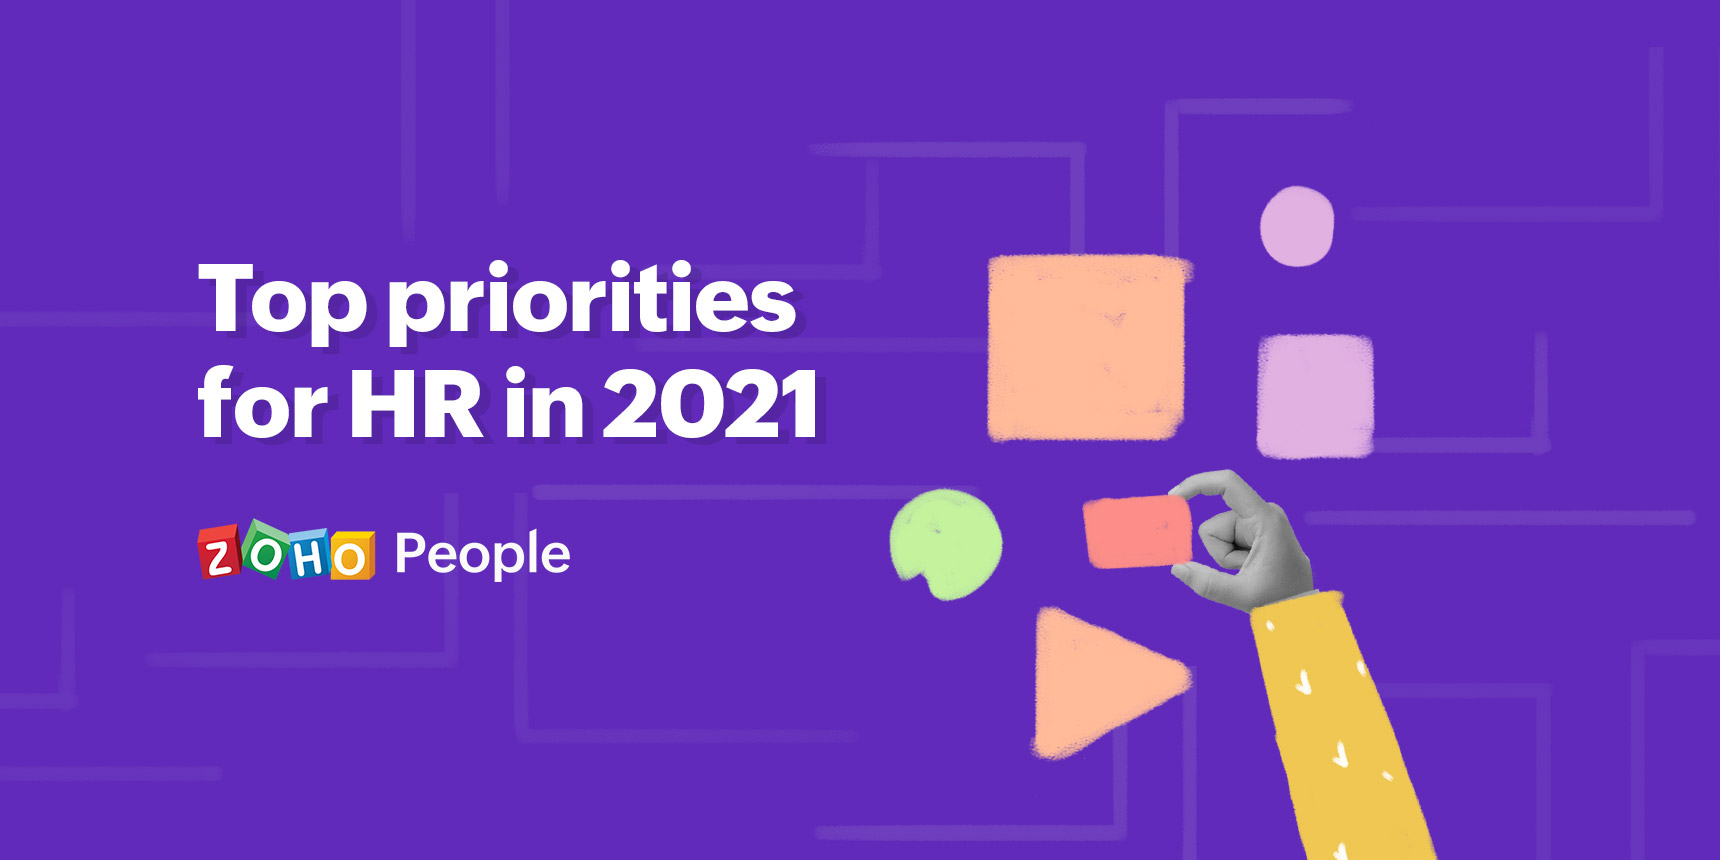 Top priorities for HR in 2021